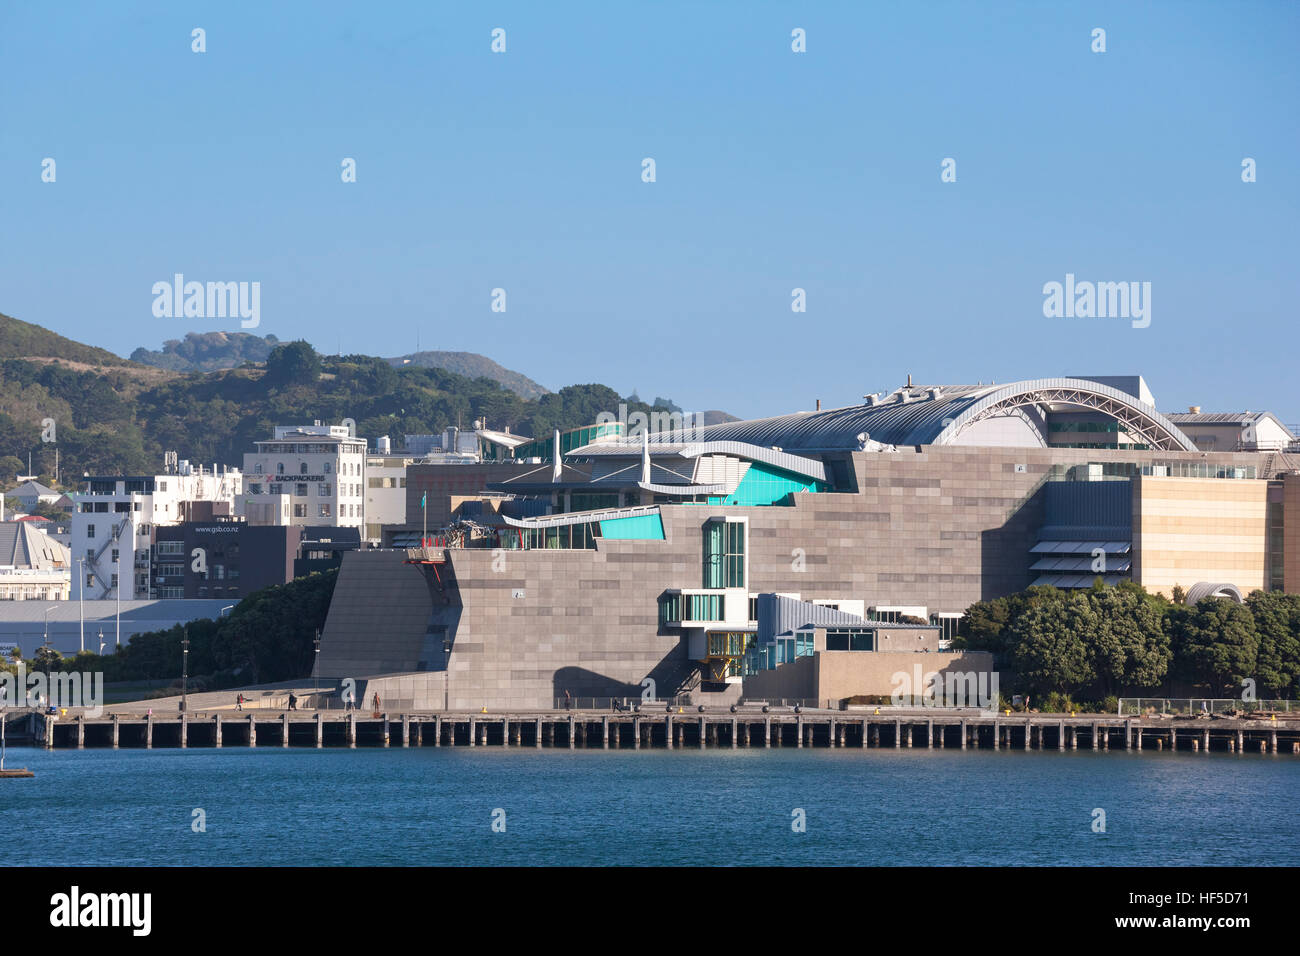 Wellington Waterfront Wanderung mit Te Papa Tongarewa, Museum of New Zealand. Blick über den Lambton Harbour. Stockbild